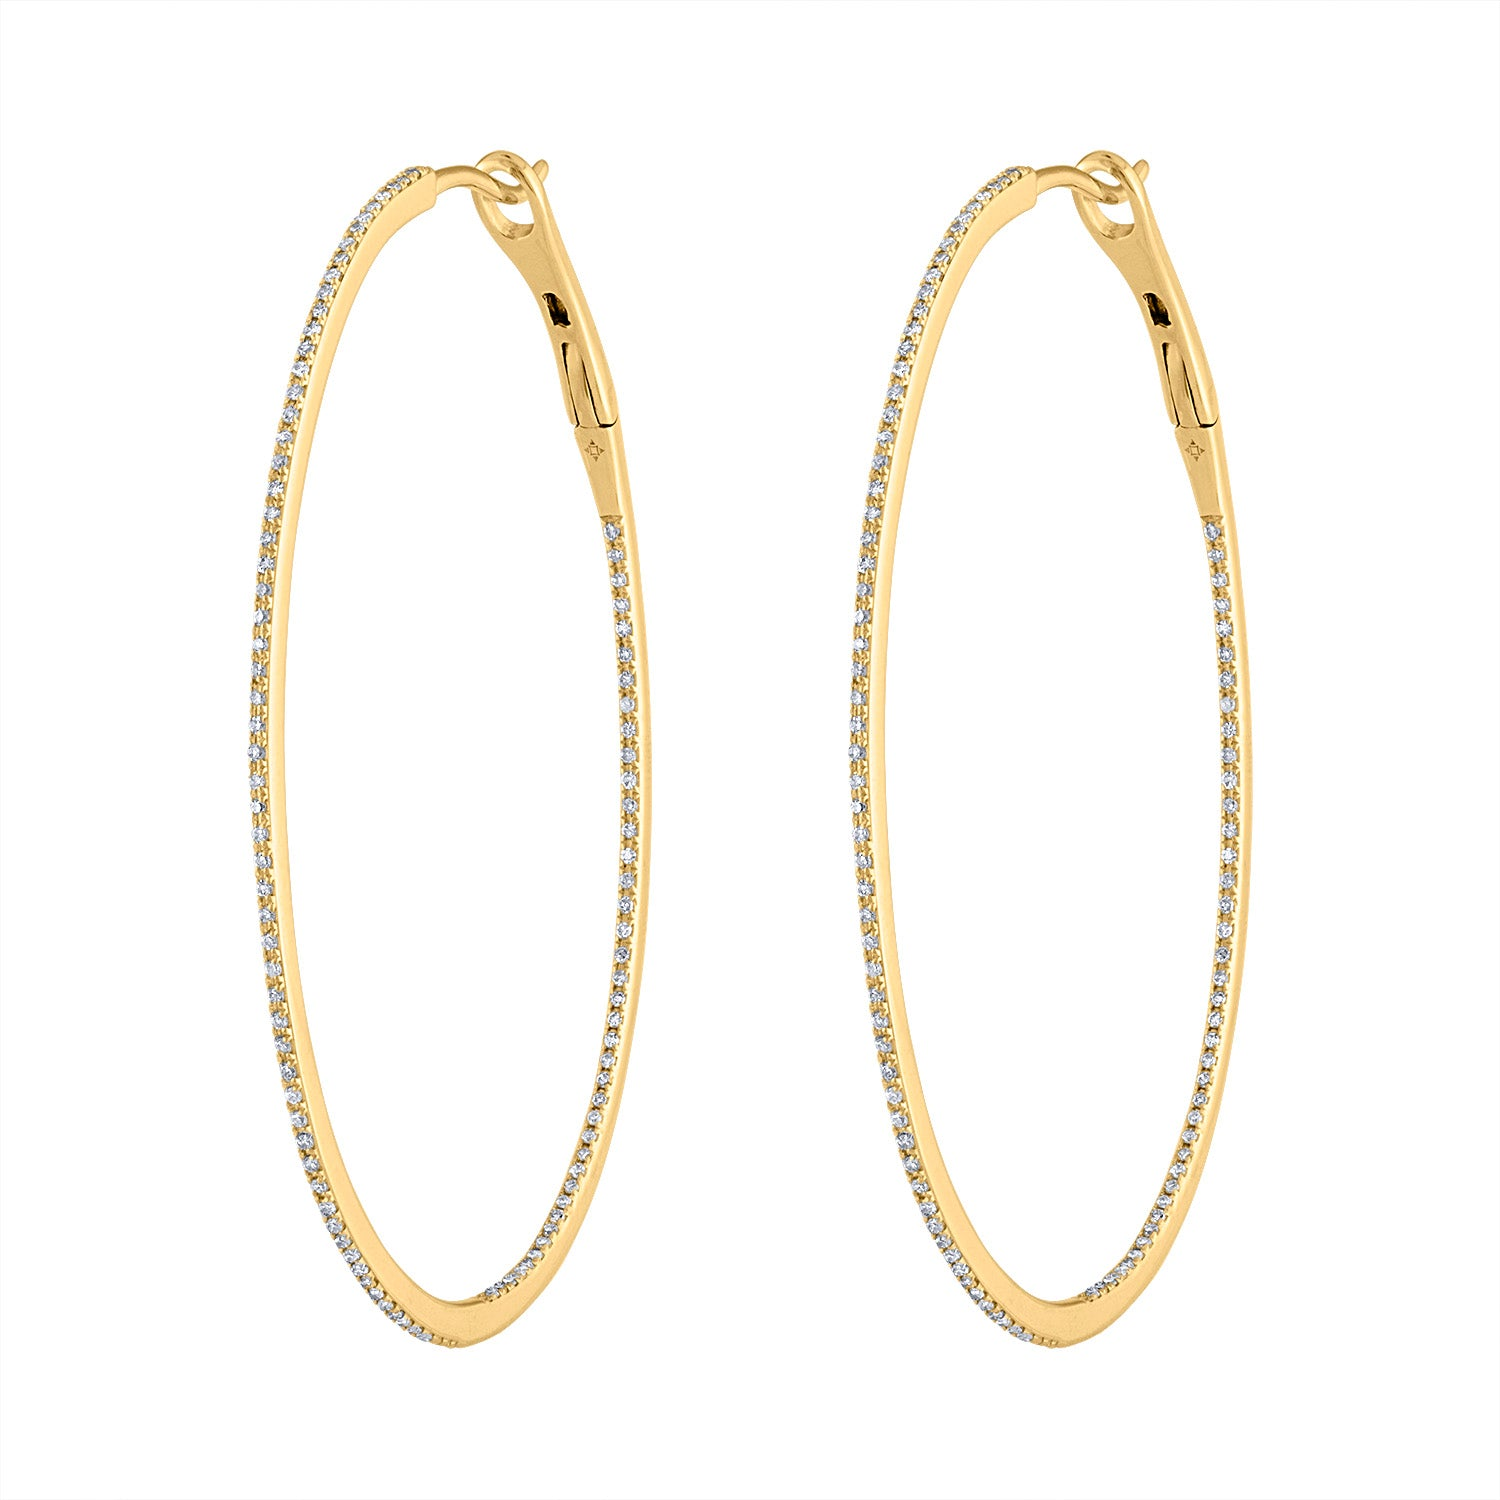 14KT GOLD LARGE DIAMOND OVAL HOOP EARRING